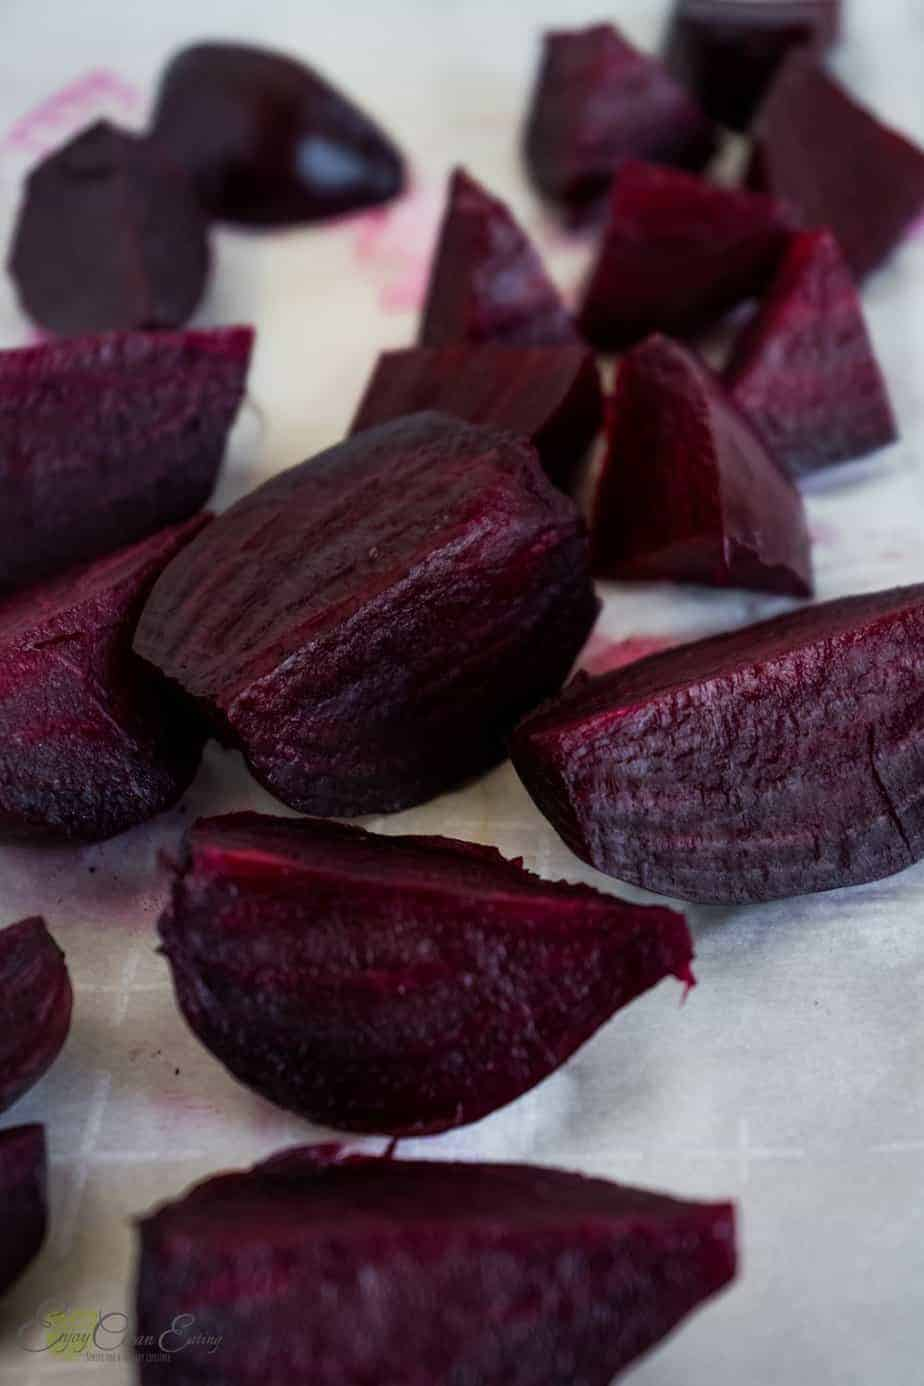 chopping the beets after pressure cooking, they look perfectly cook.